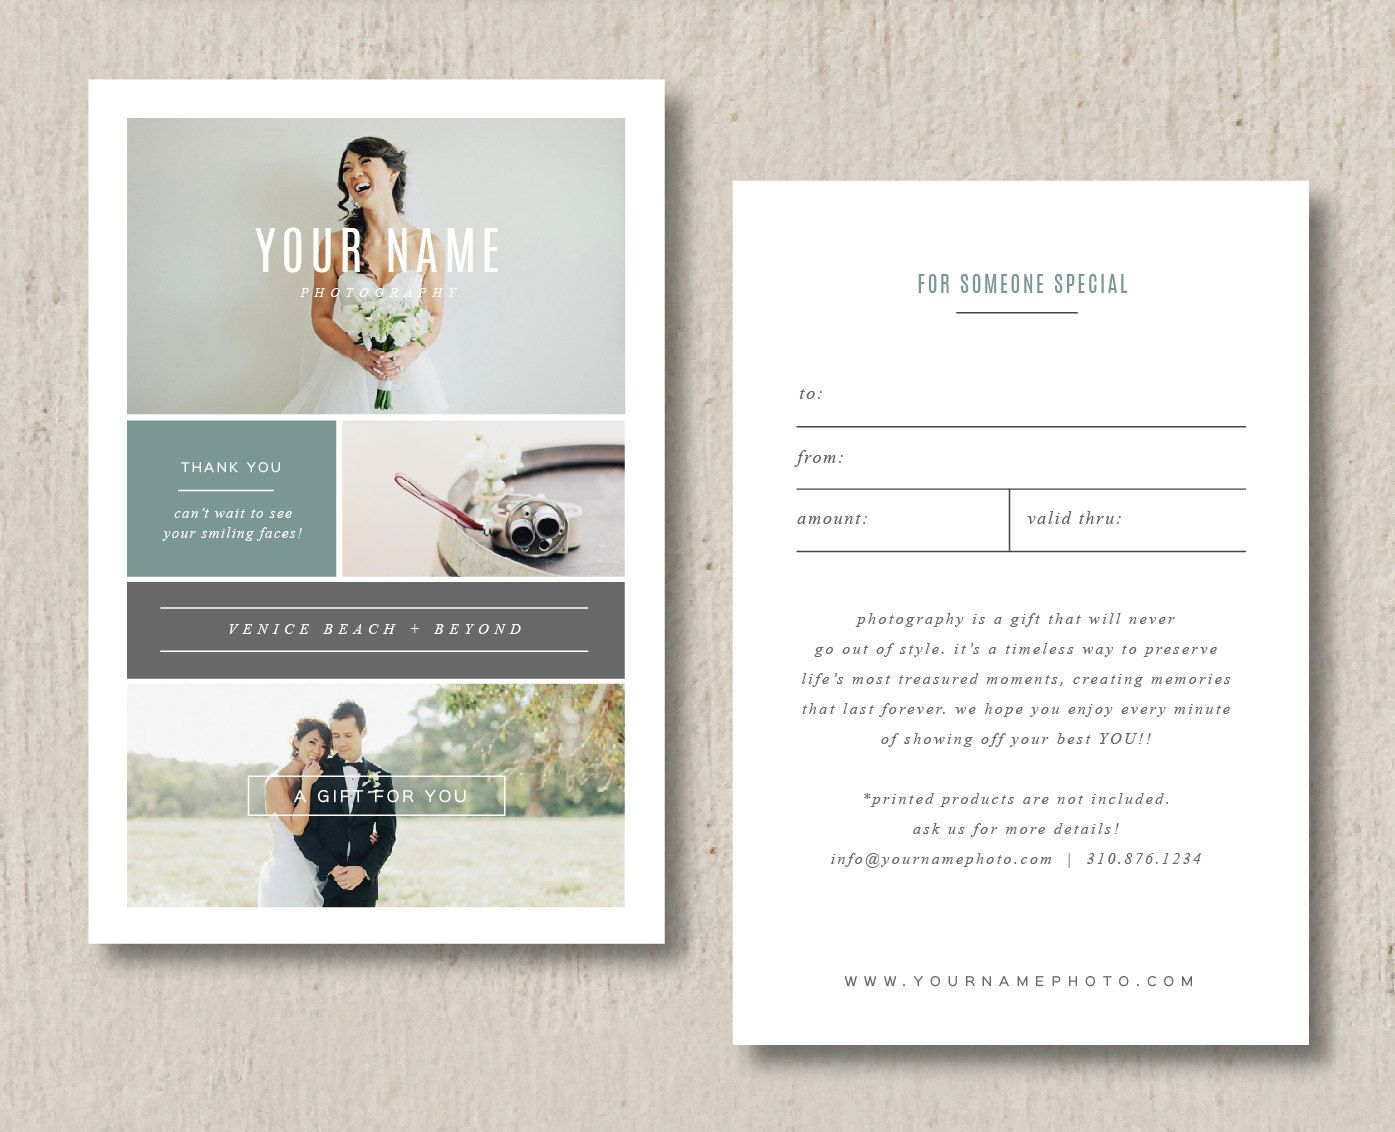 Photography Gift Card Template Wedding Photography Marketing Etsy Wedding Photography Marketing Gift Card Template Wedding Photography Magazine Template